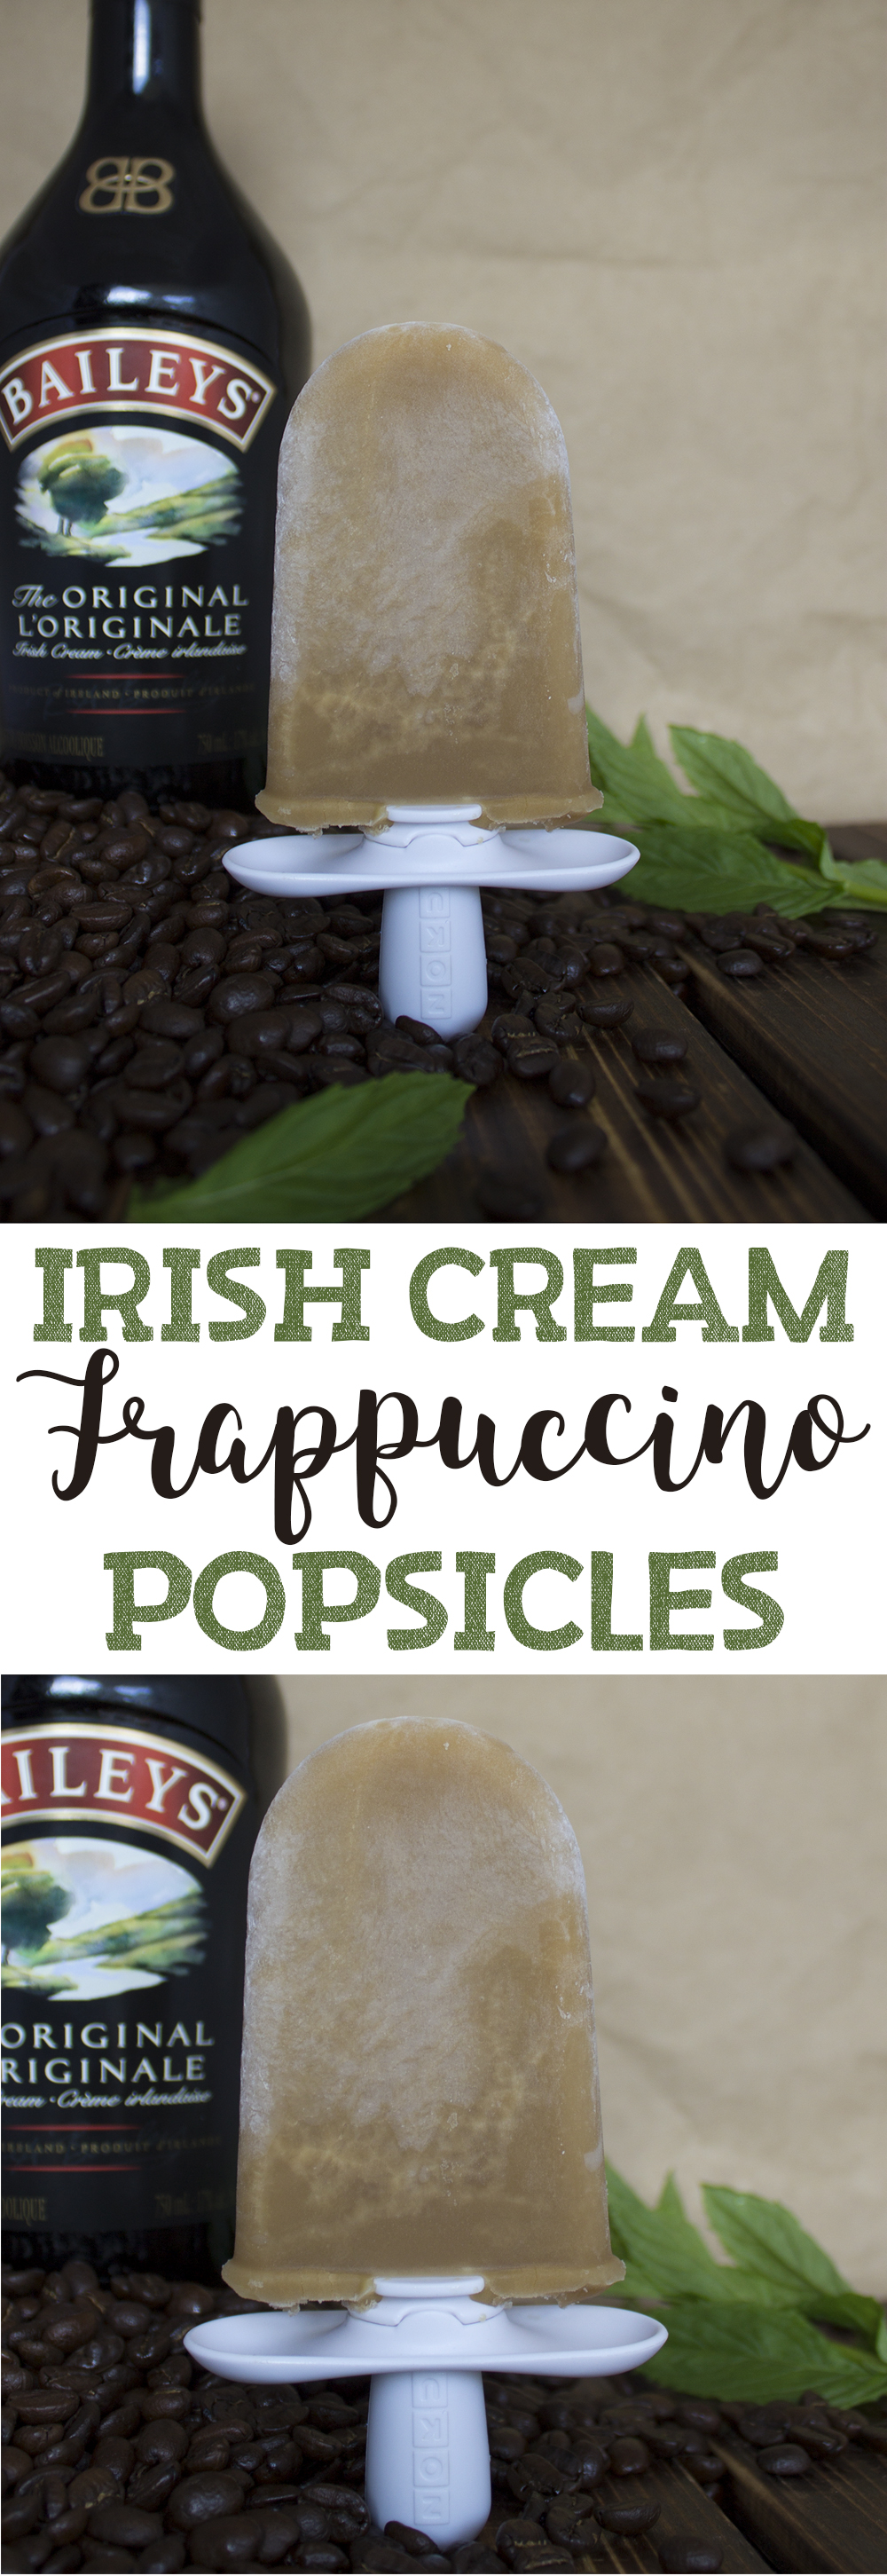 Irish Cream Frappuccino Popsicles